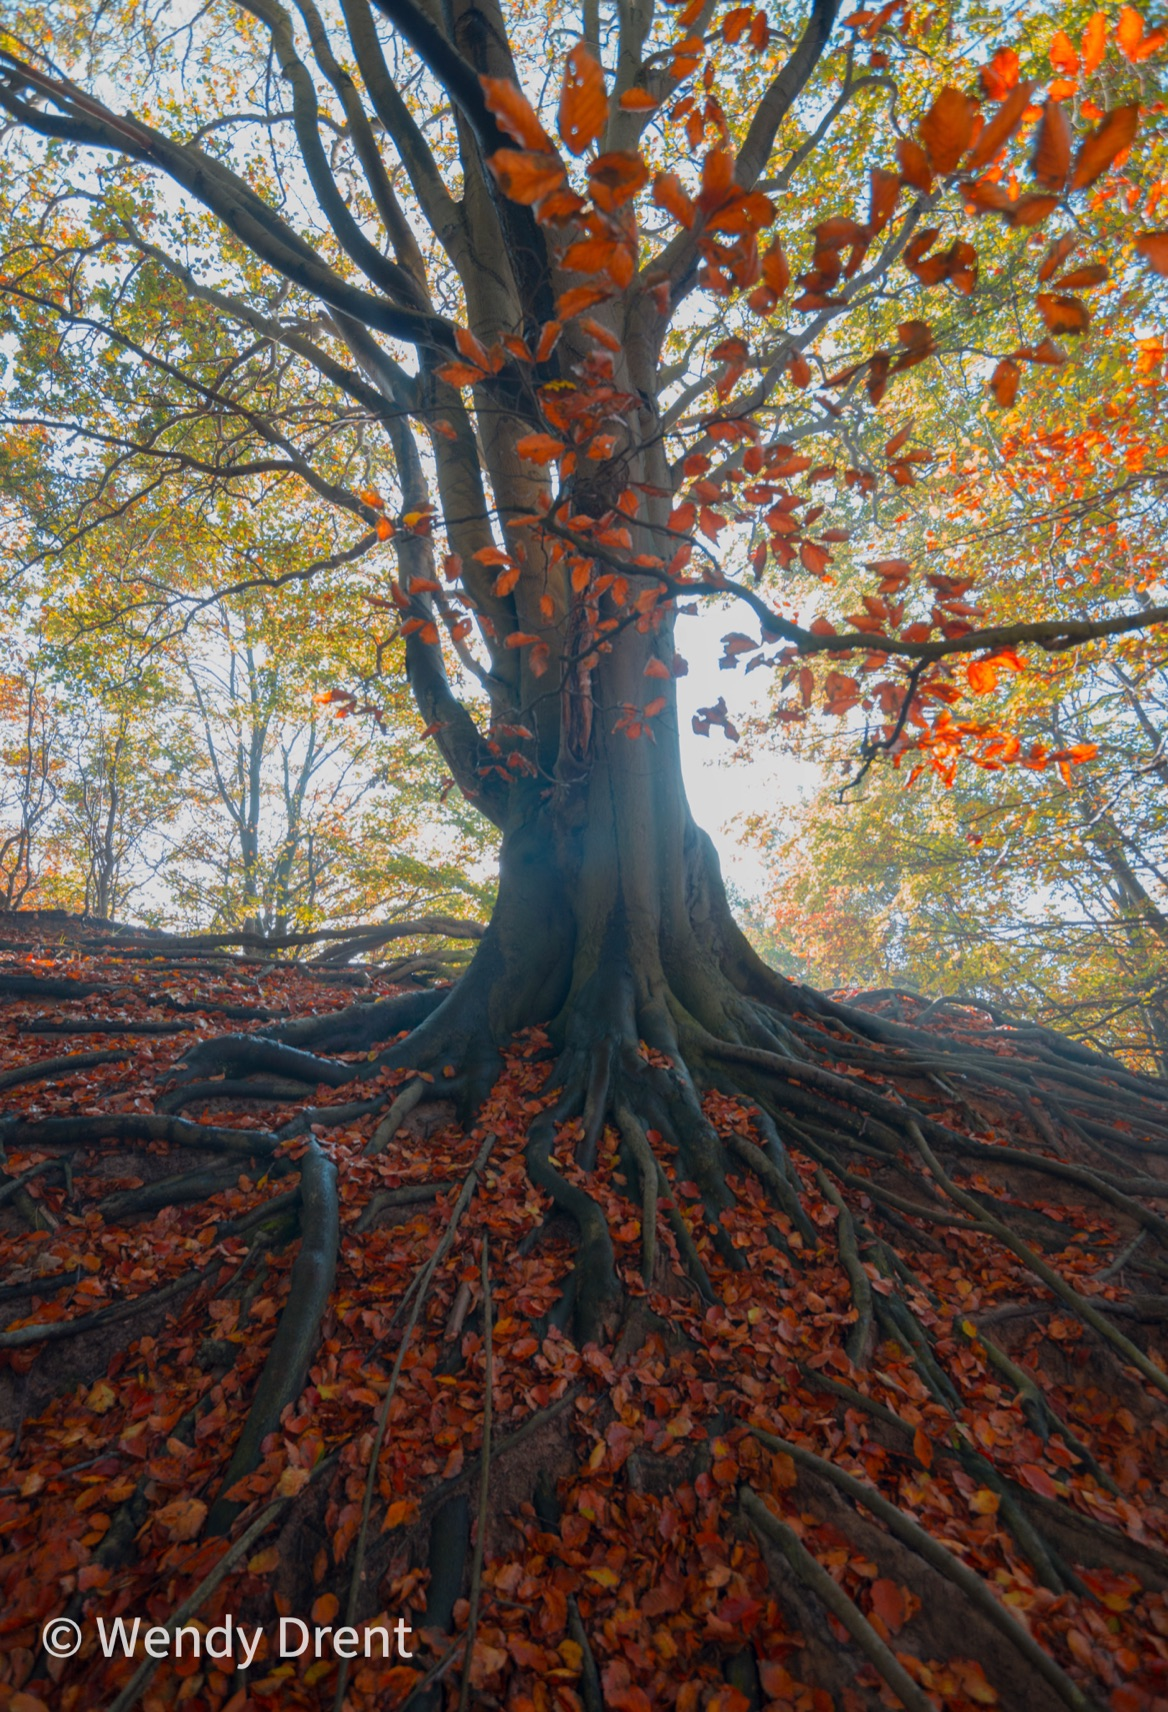 tree roots, tree, autumn, red leaves, wendy drent, landscape, nature, naturephotography, noord-holland, netherlands